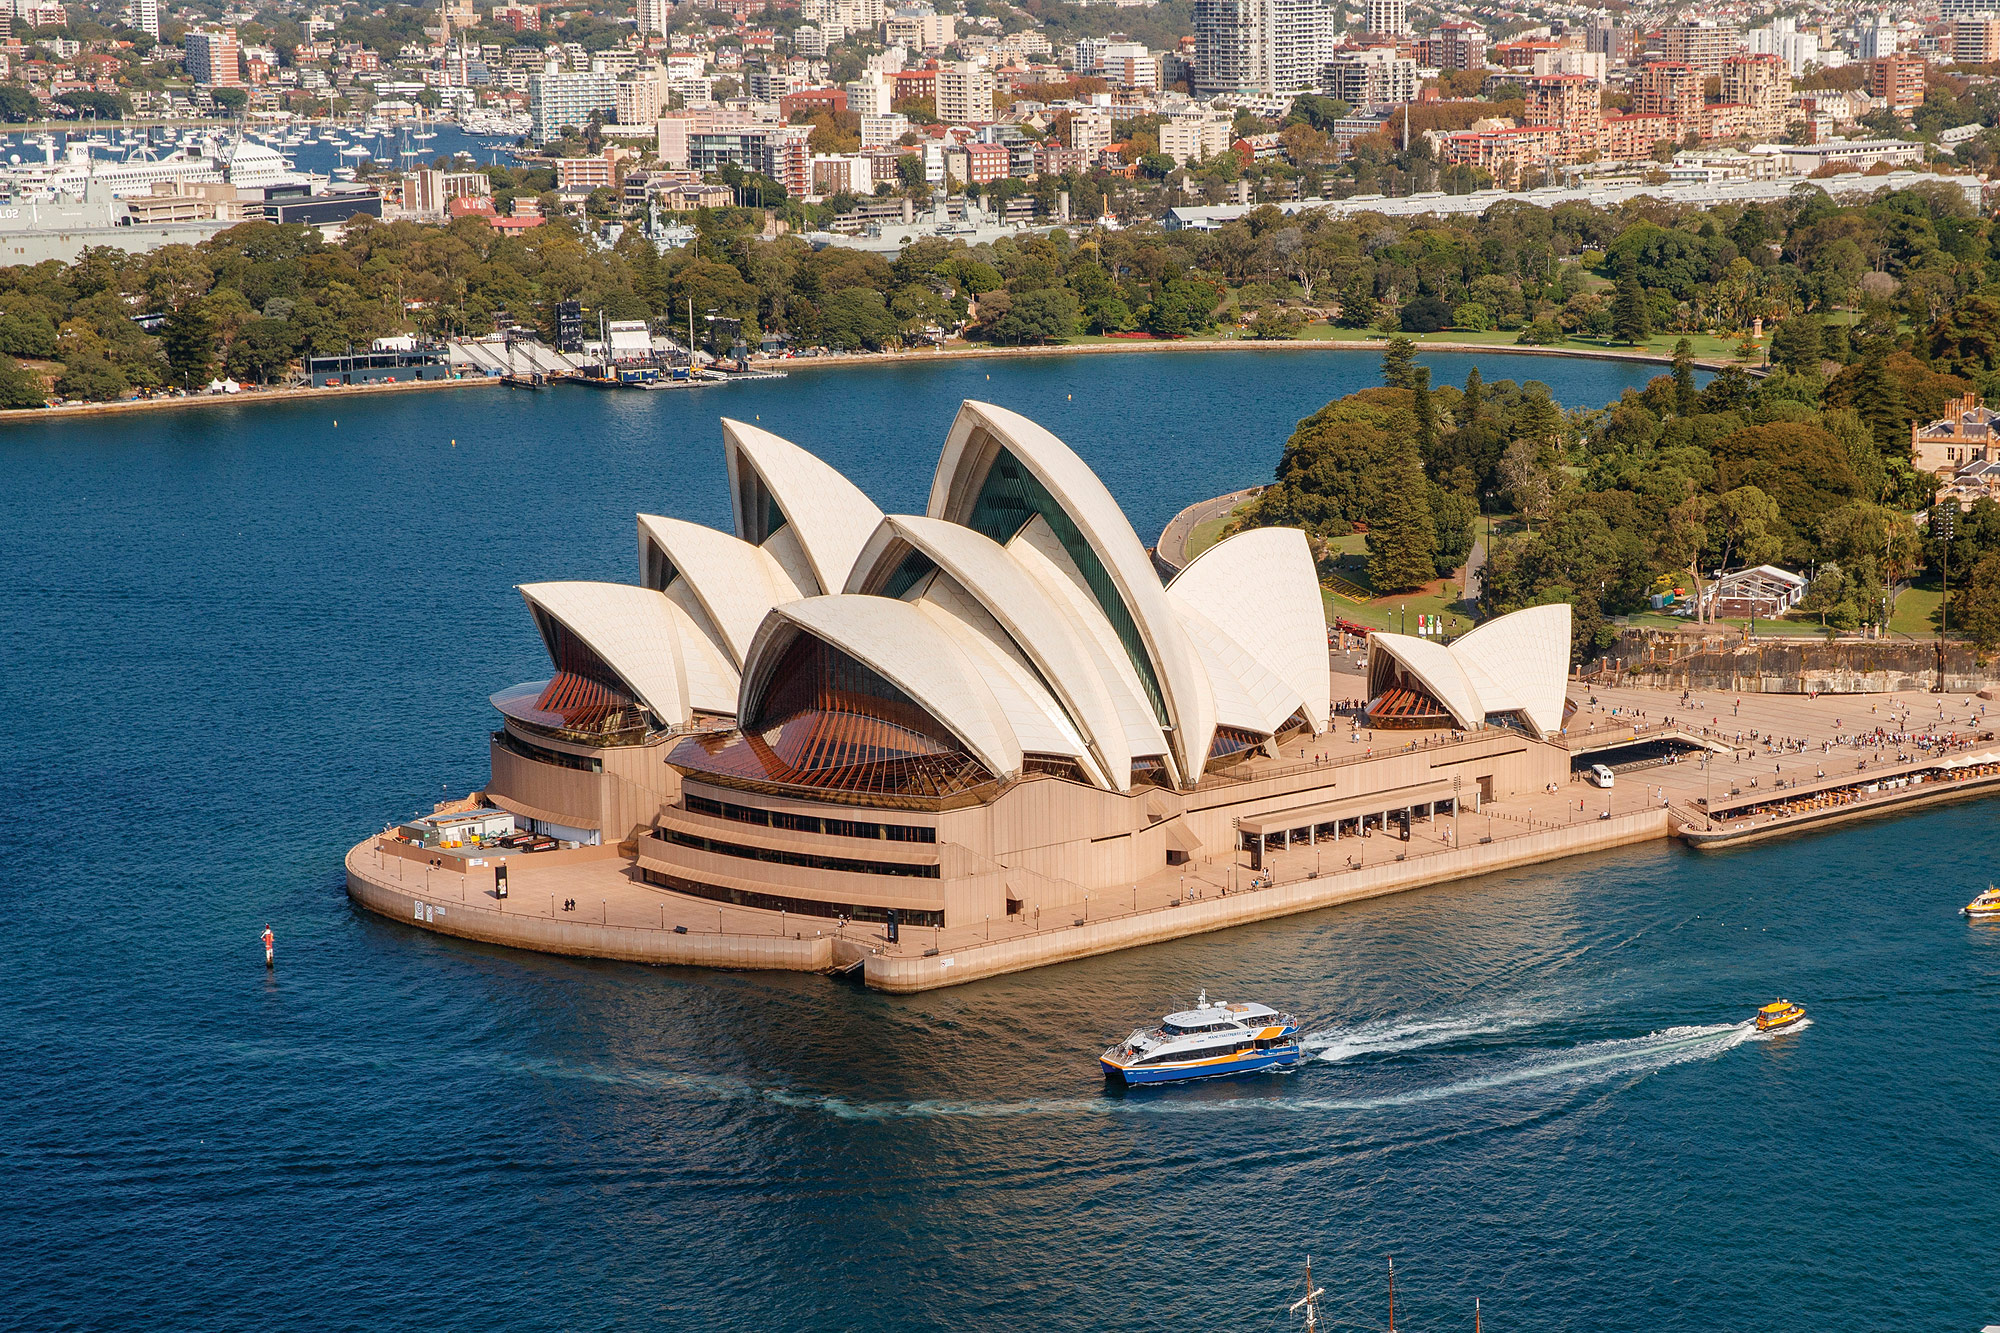 Manly Fast Ferry, Sydney Opera House